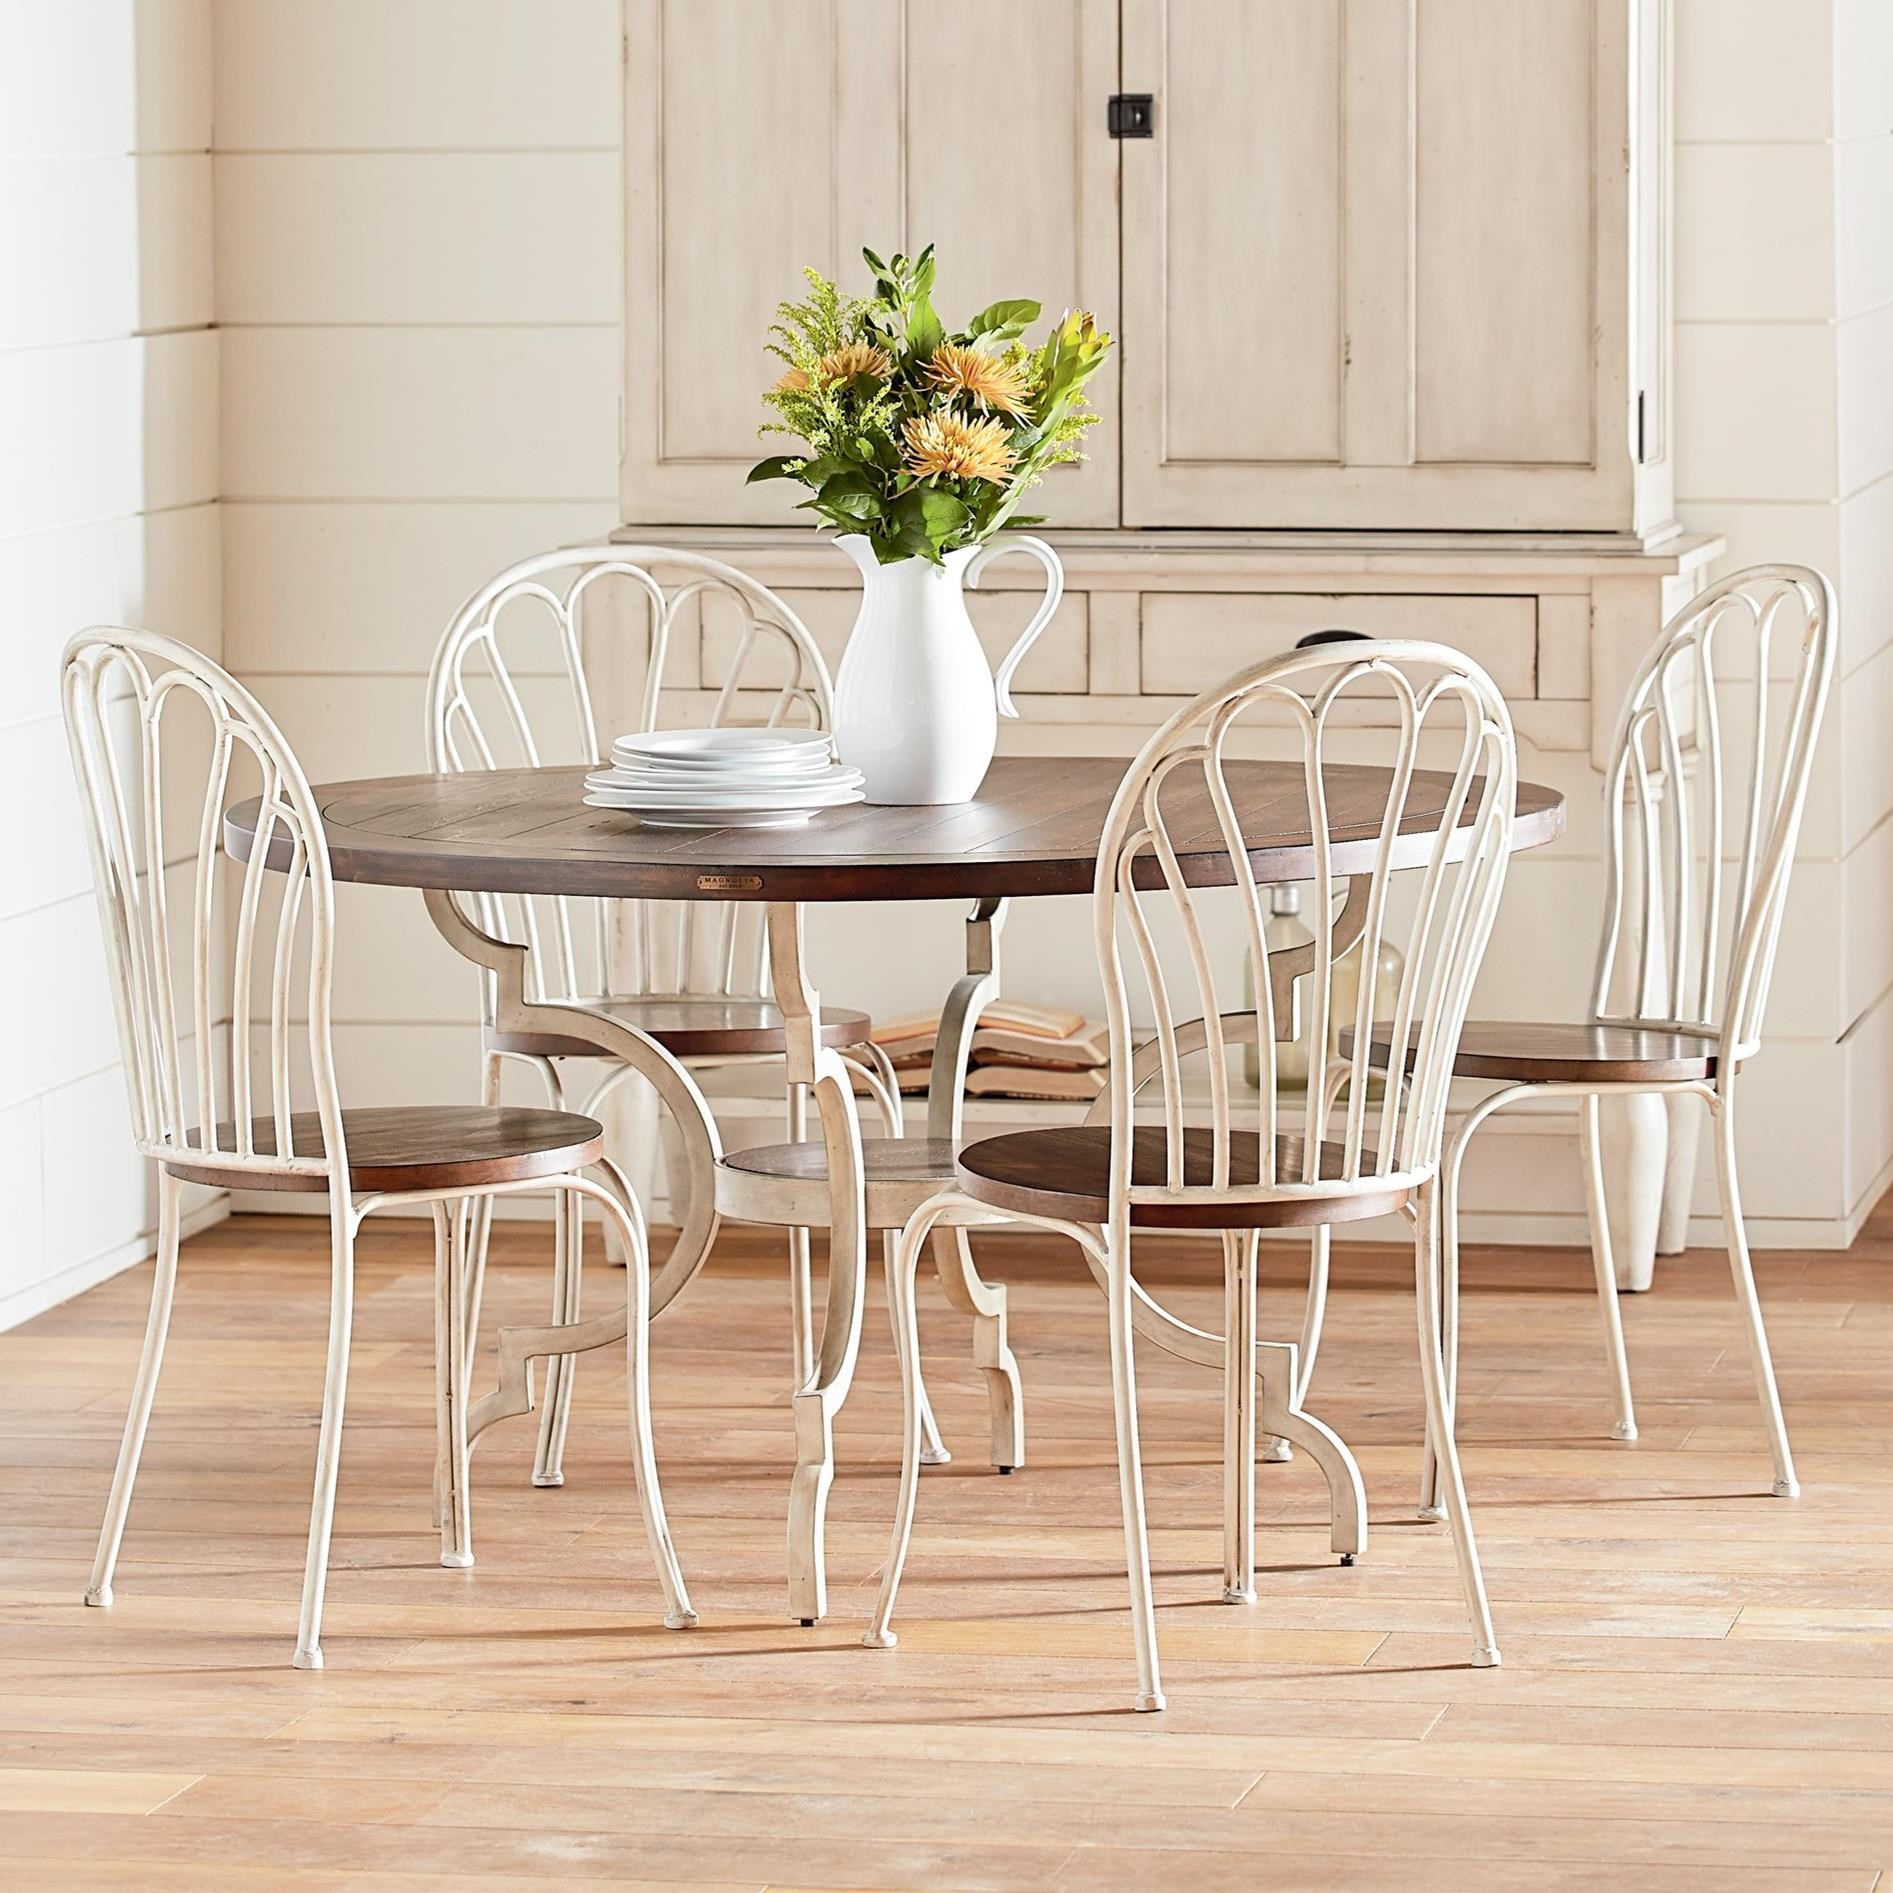 5 Piece Round Table & Chair Set by Magnolia Home by Joanna Gaines